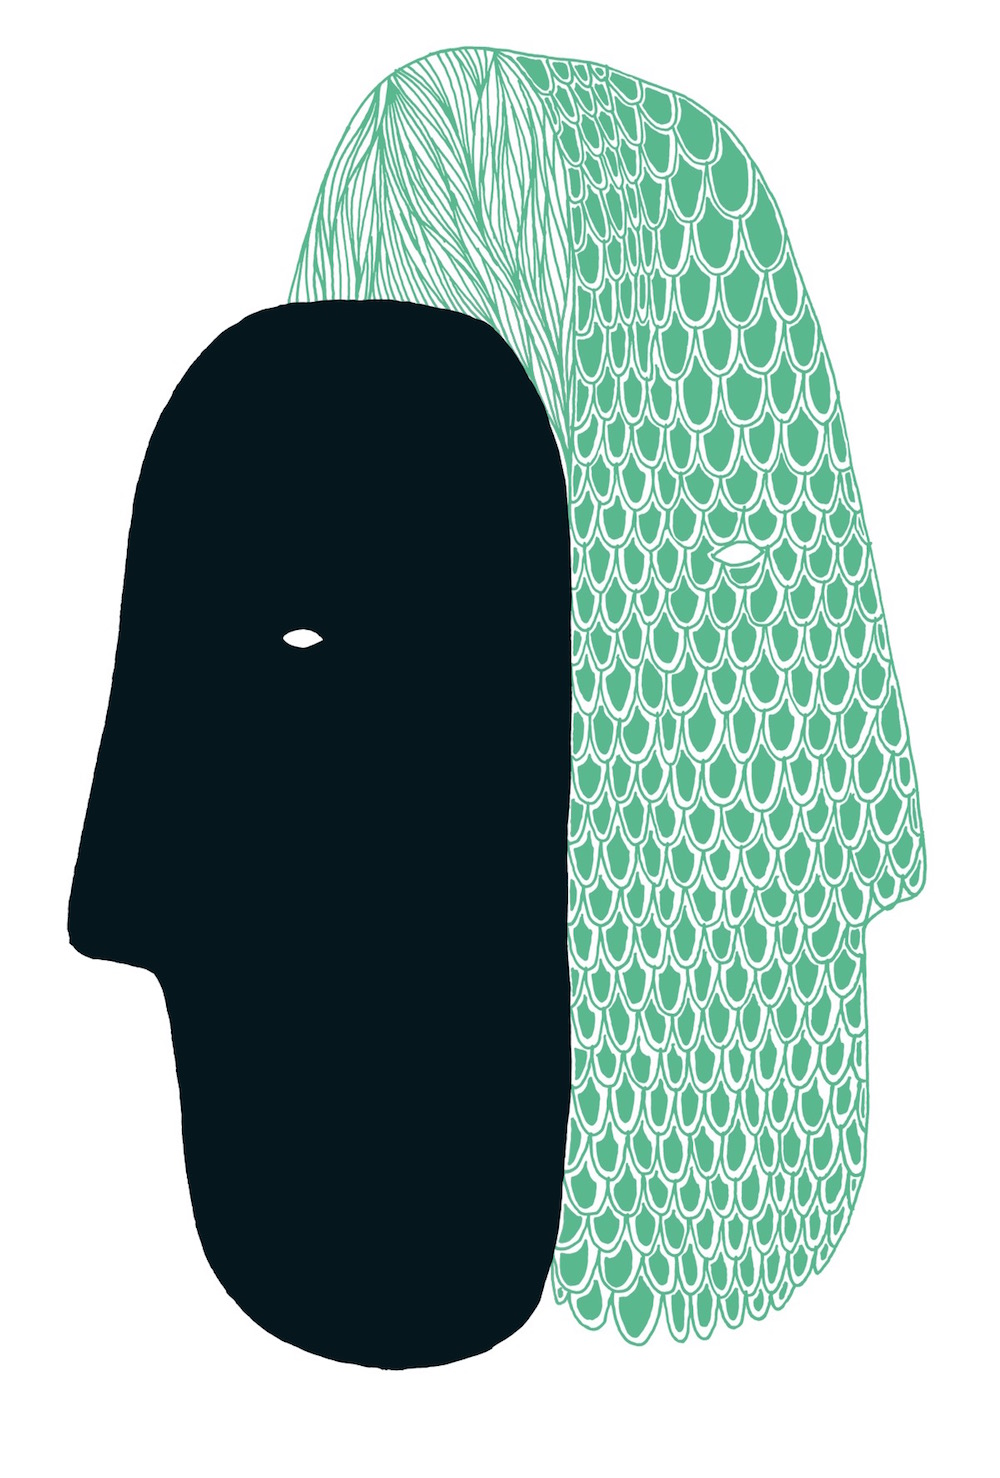 illustration, illustrations, illustrator, illustrators, scale, scales, hair, hairs, double, duplicity, mask, masks, turquoise